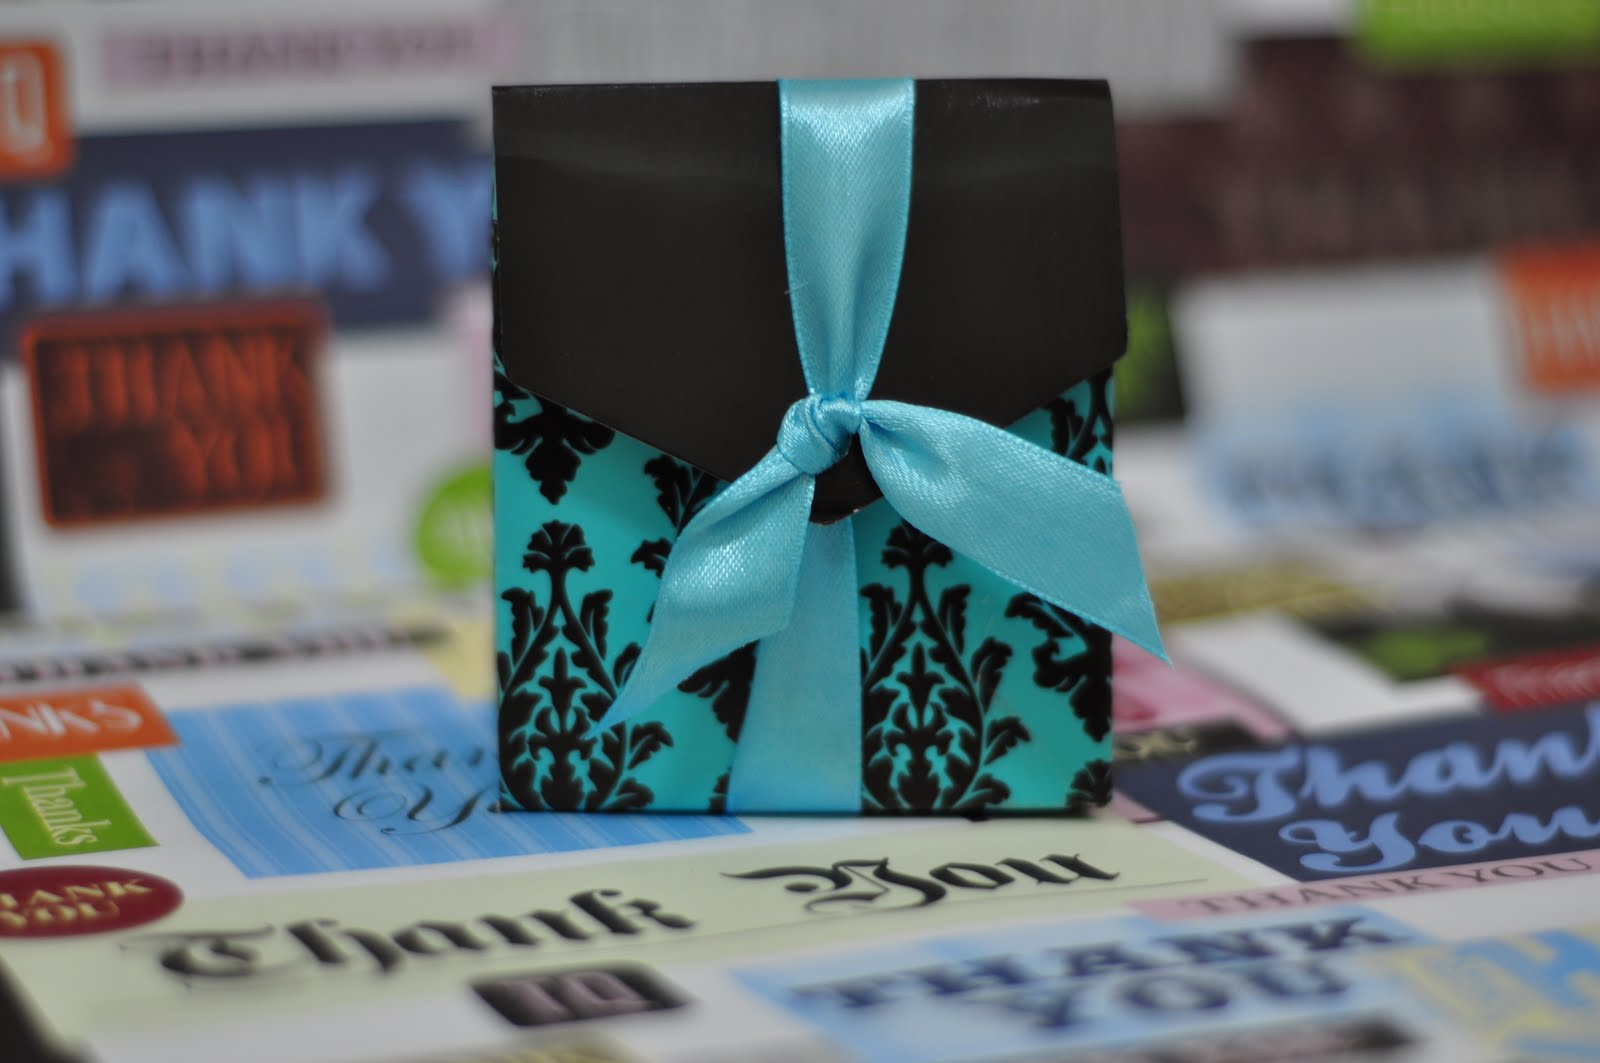 Favorart Wedding Favor And Gifts In Malaysia Wed1043 Silhouettes